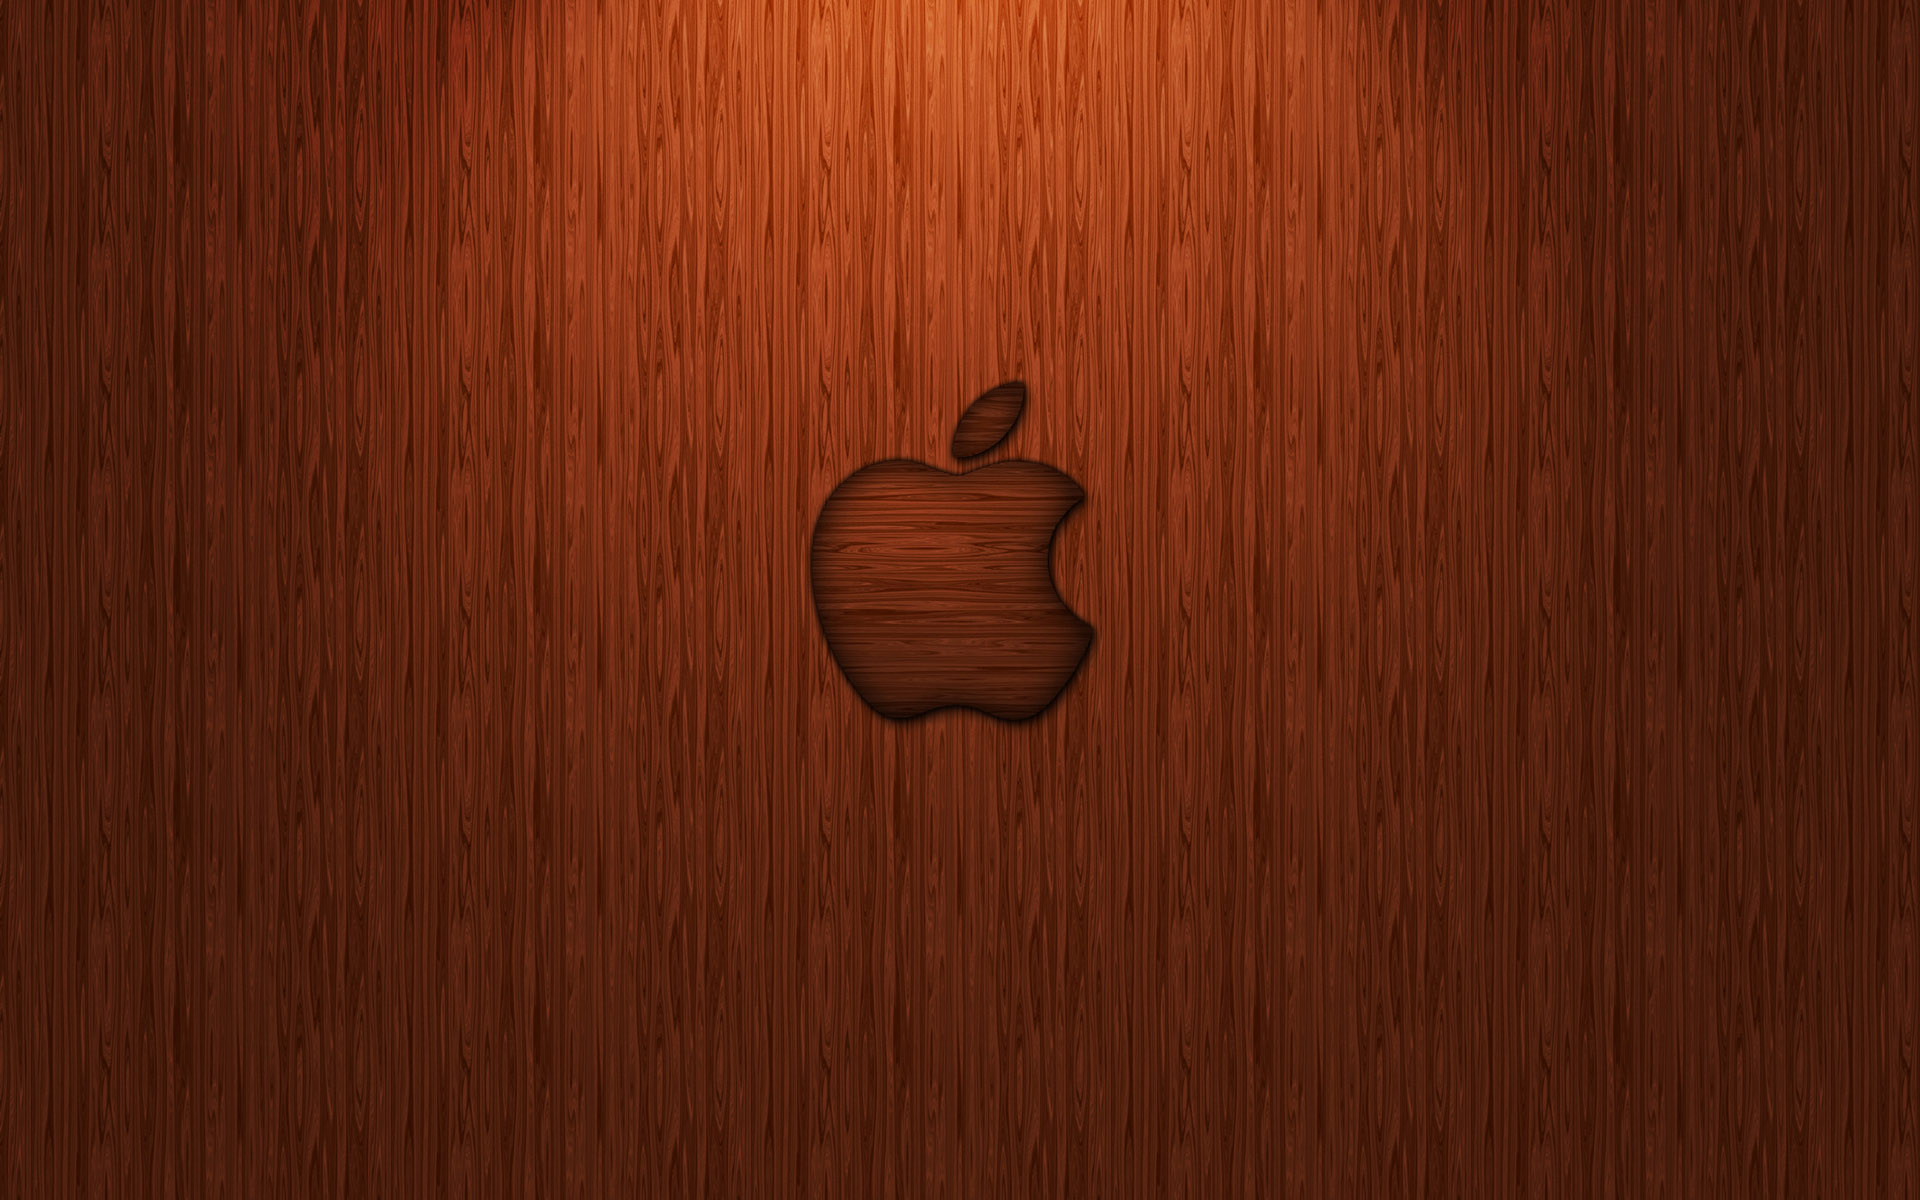 wooden apple logo wallpapers | wooden apple logo stock photos